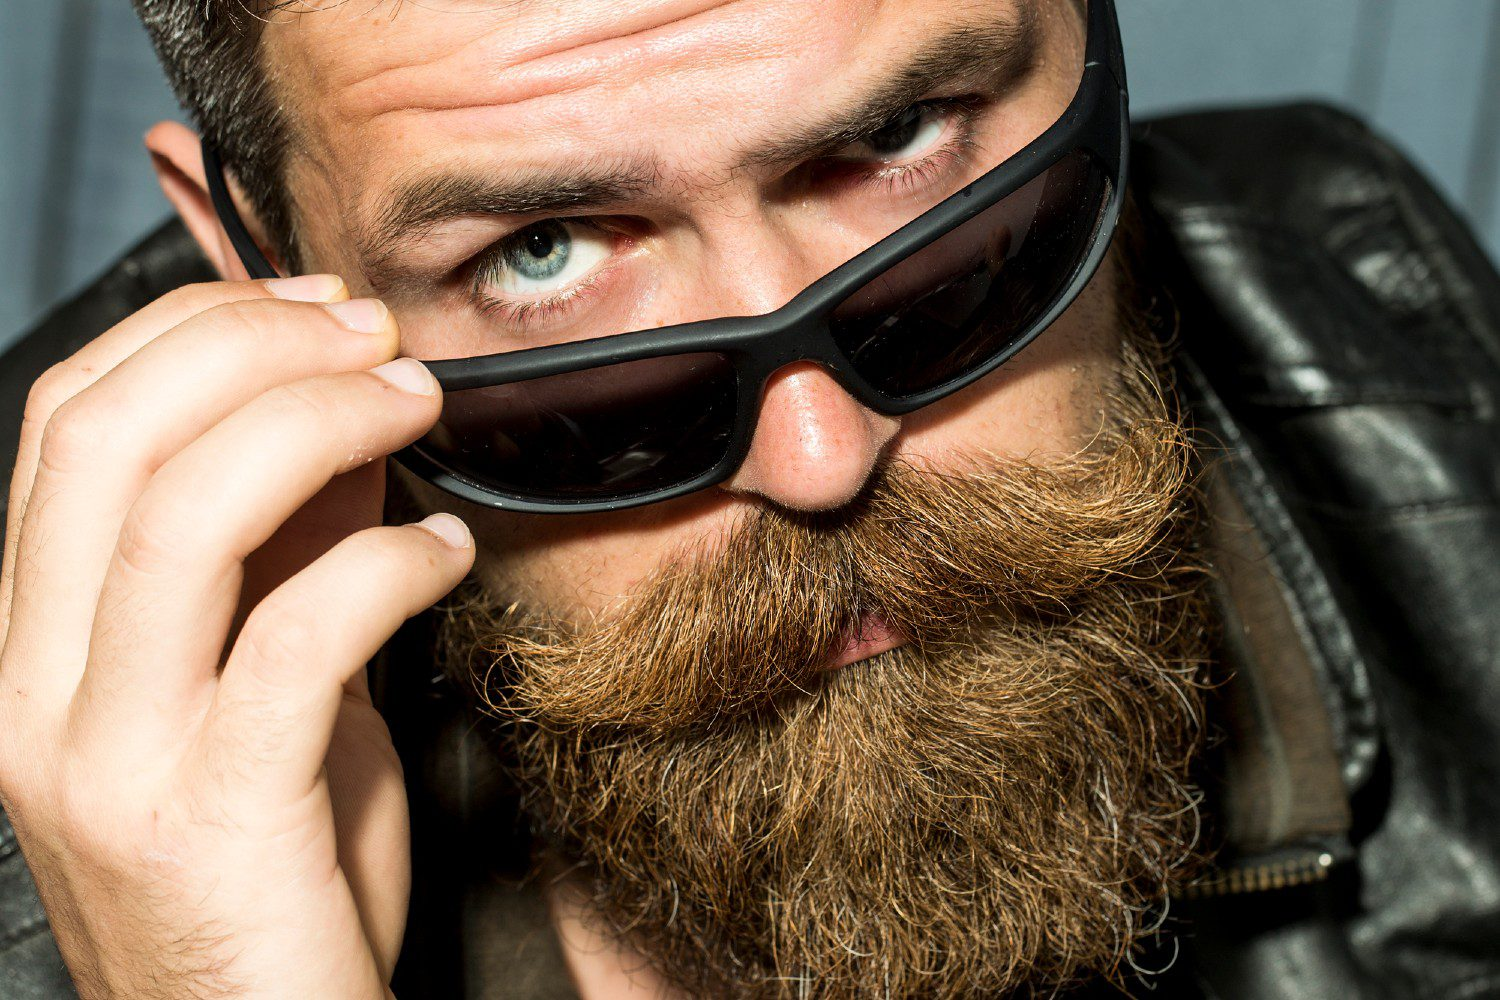 Man with sunglasses and a very thick beard looking into the camera